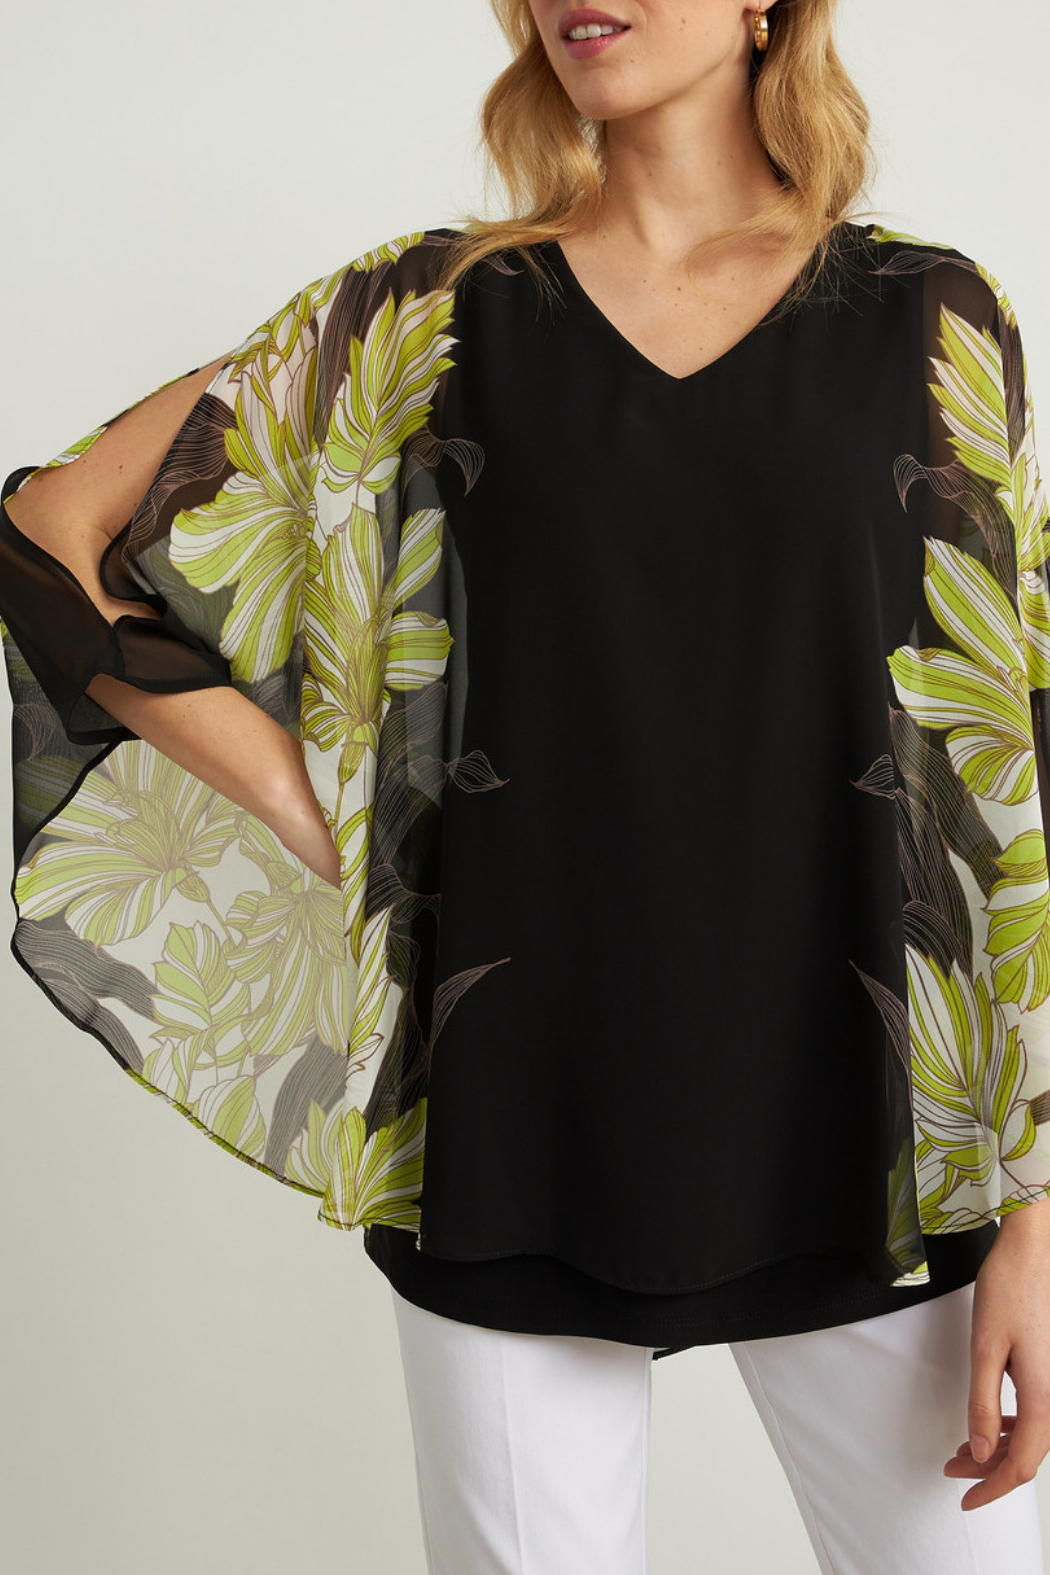 Joseph Ribkoff  Floral Cut-out Sleeve Blouse - Front Full Image